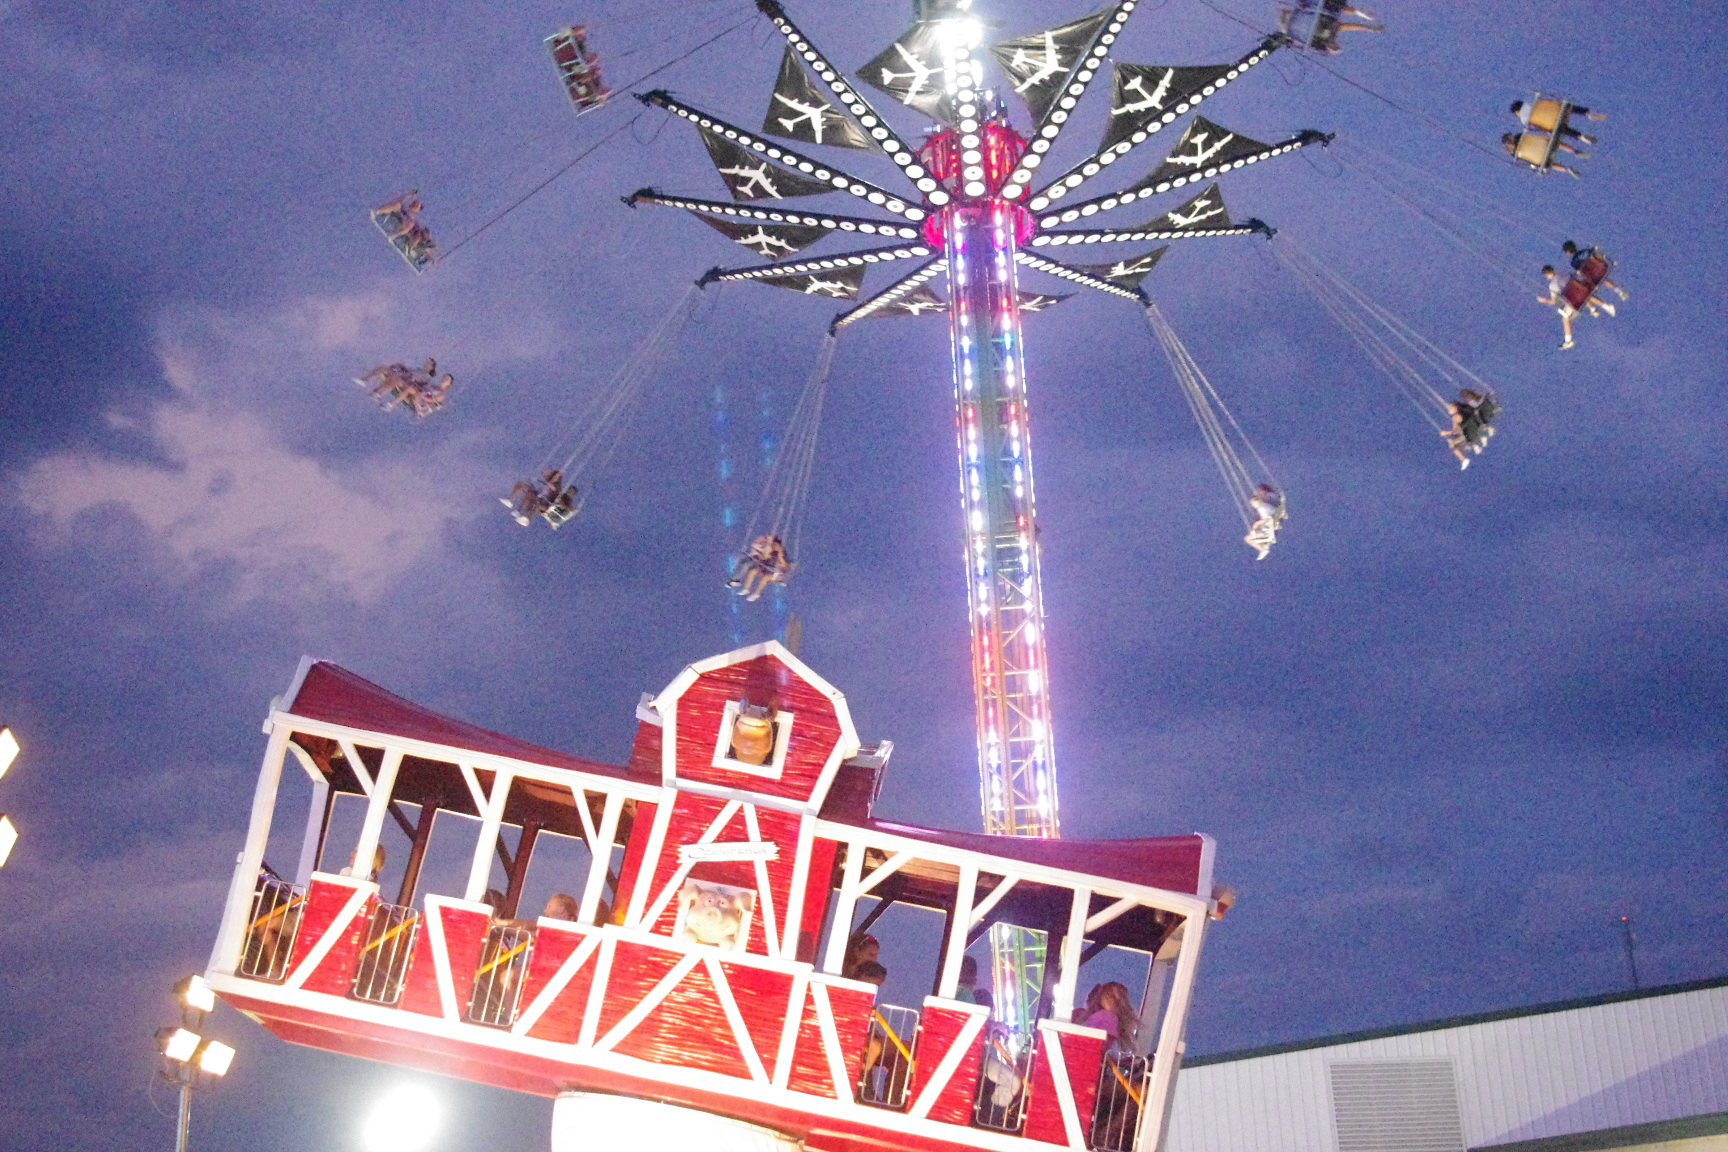 PHOTOS: Williamson County Fair draws thousands during first day